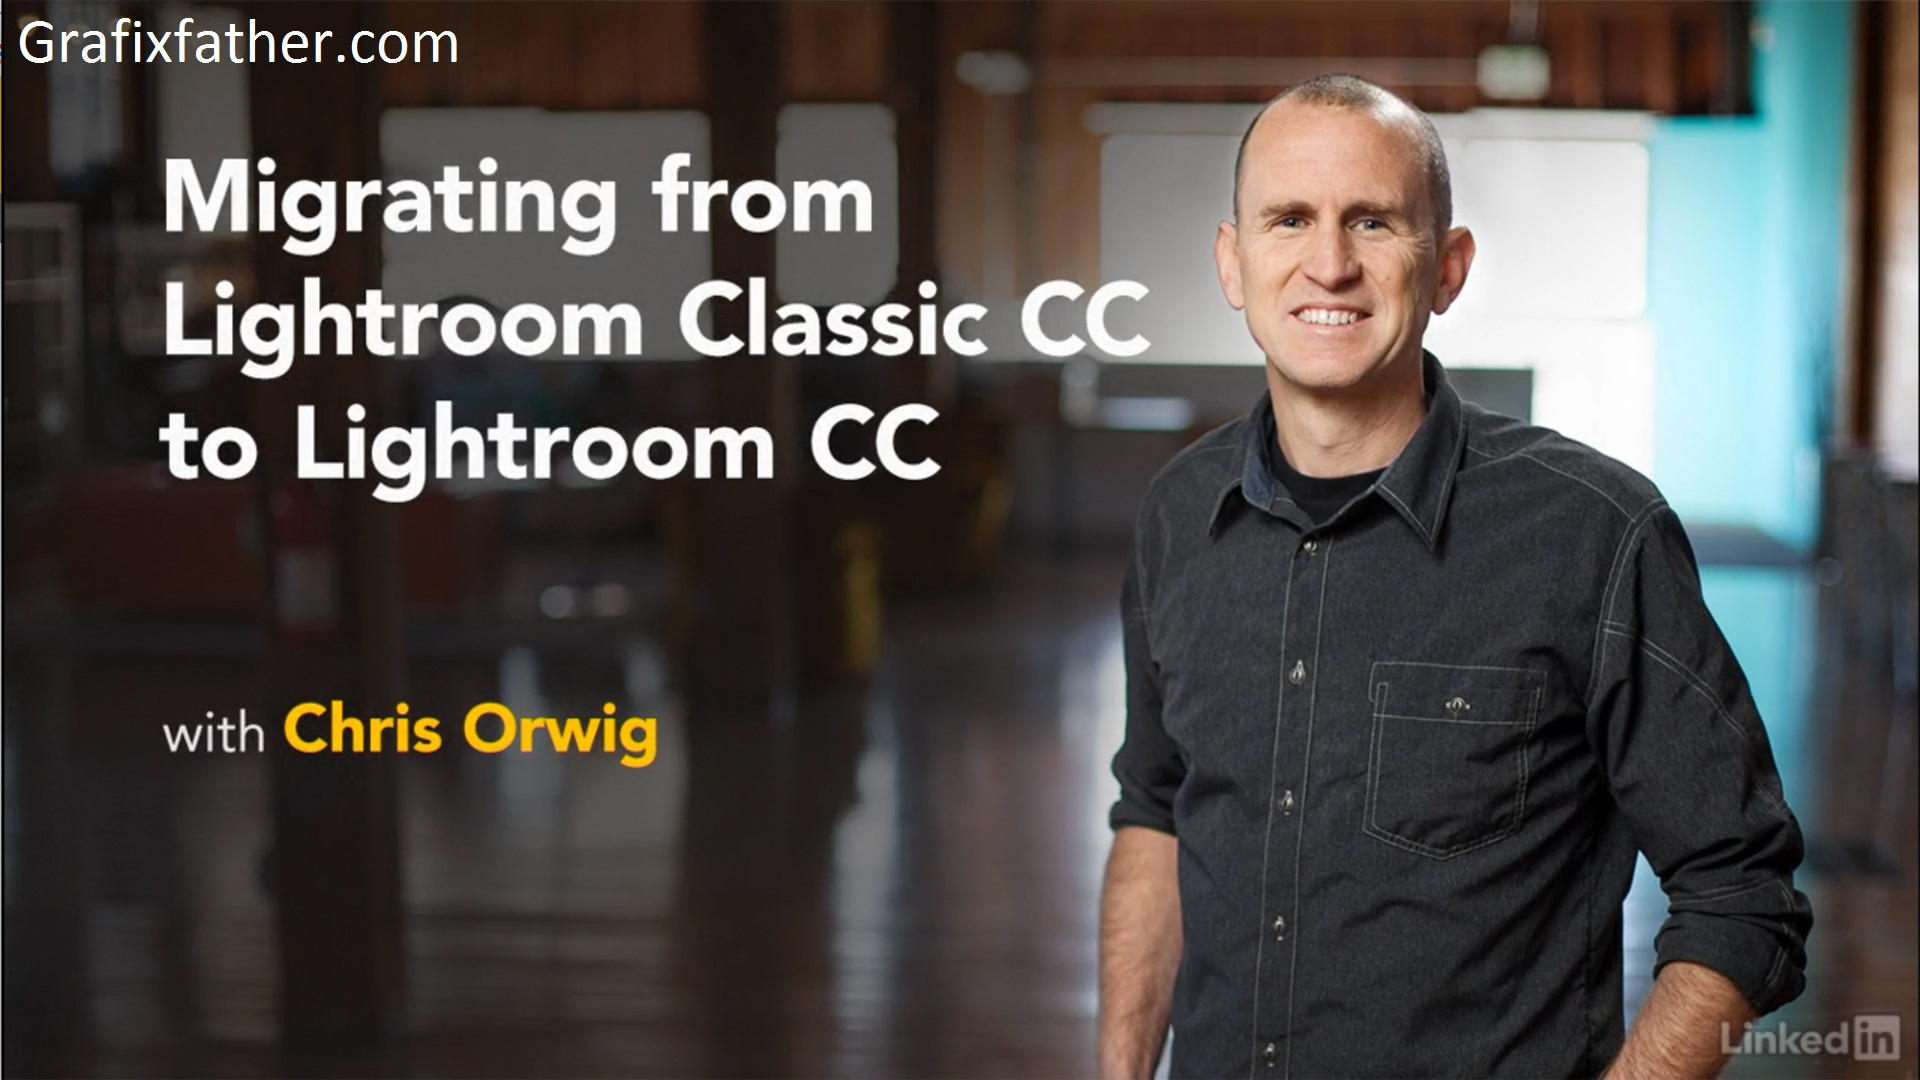 Migrating from Lightroom Classic CC to Lightroom CC